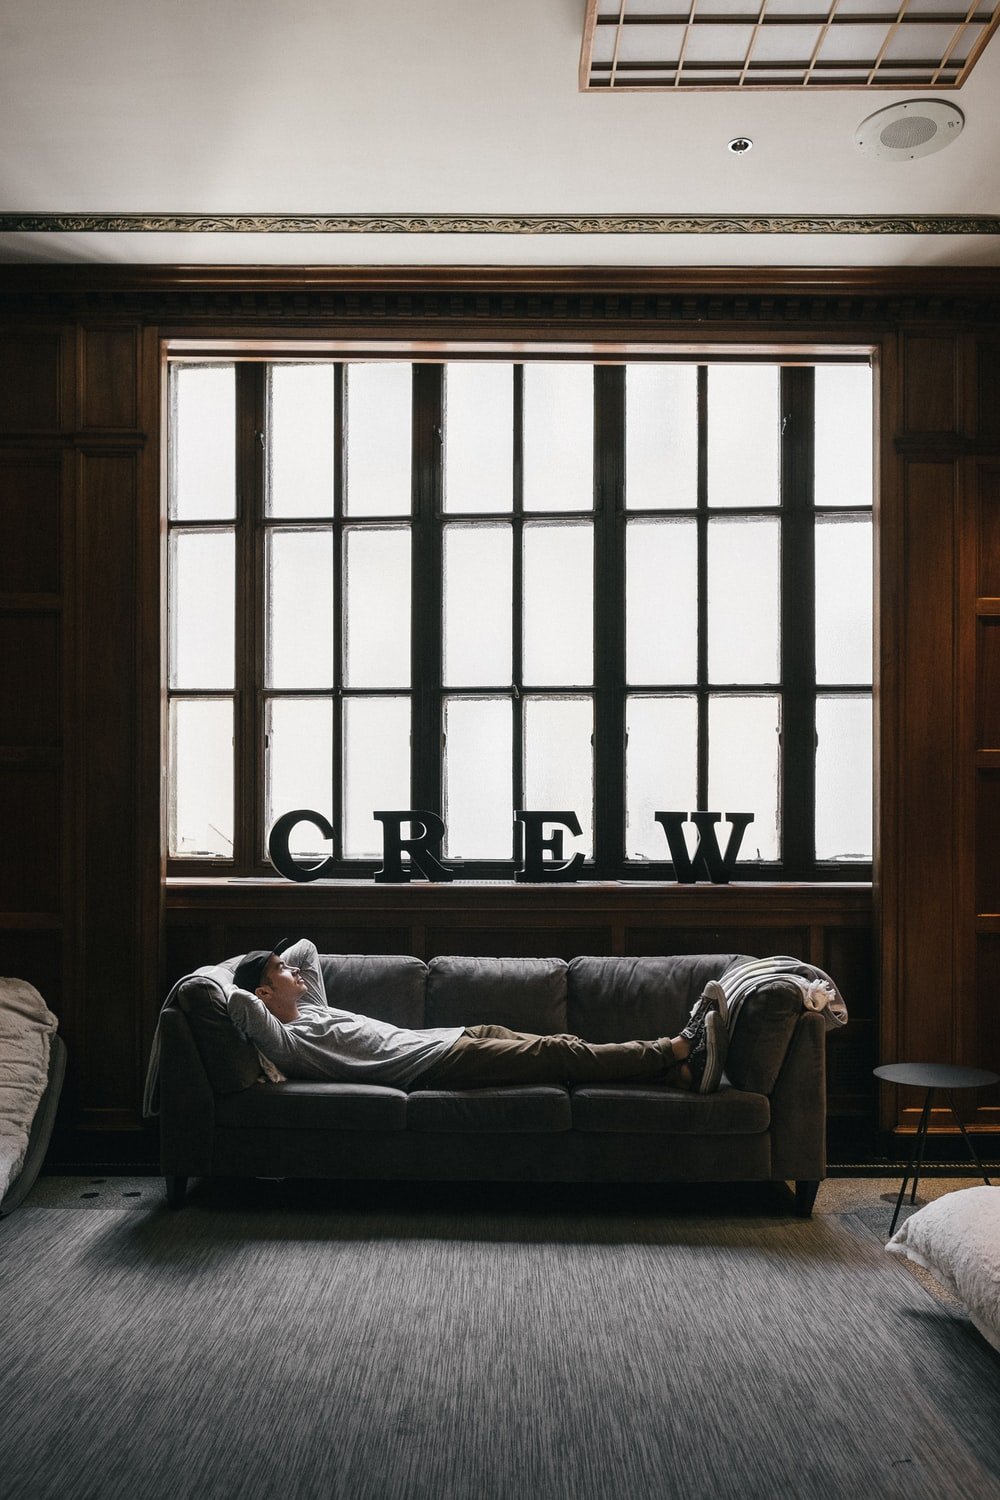 photo of person laying on sofa near window